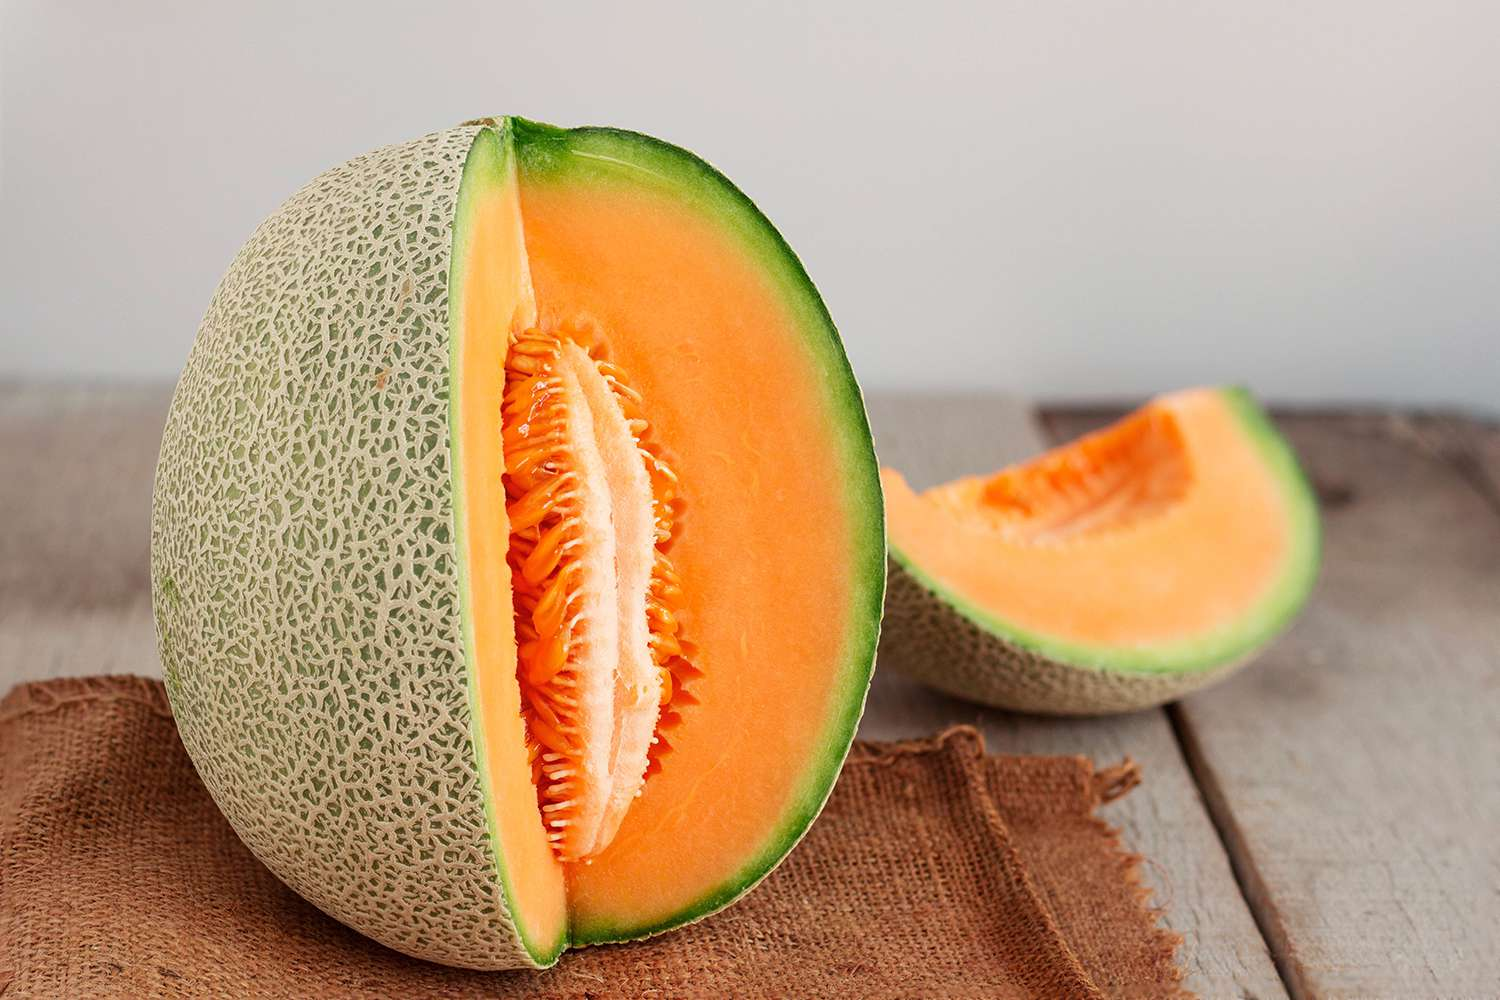 Close-Up Of Cantaloupe On Table